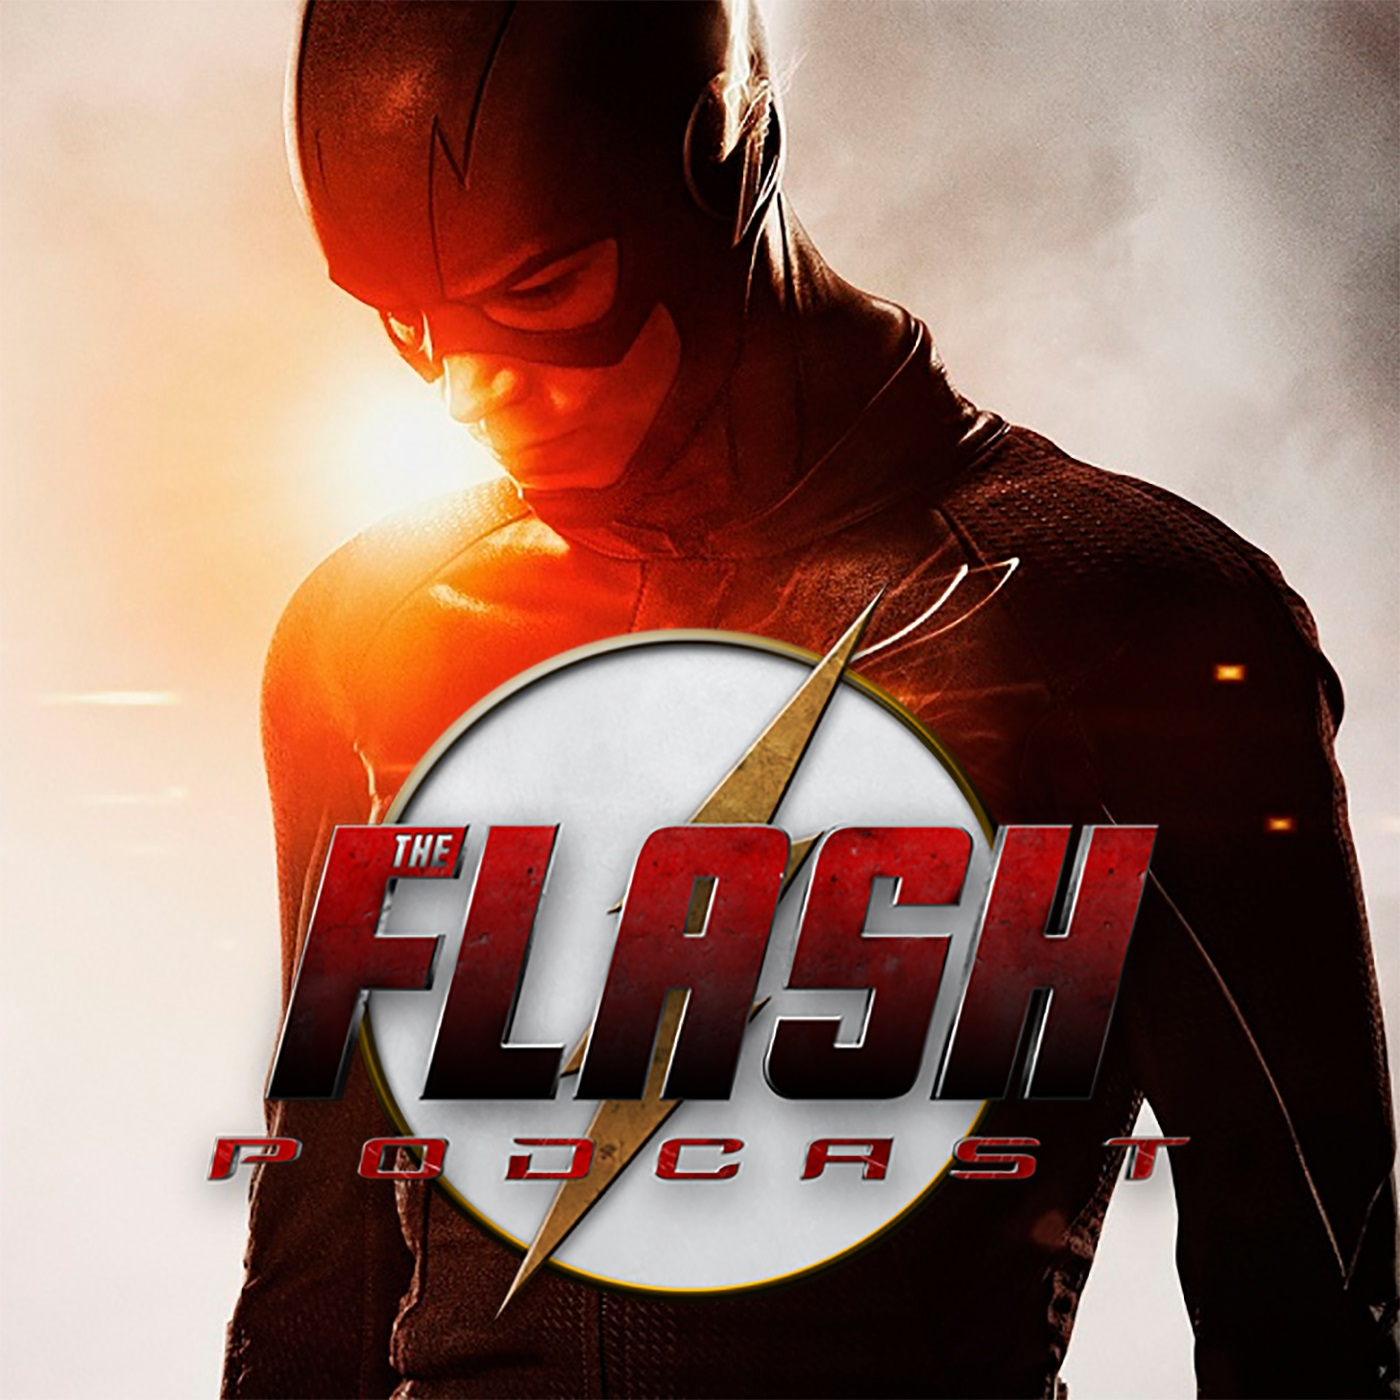 The Flash Podcast Special Edition: What's Coming Up In The Flash Season 2B